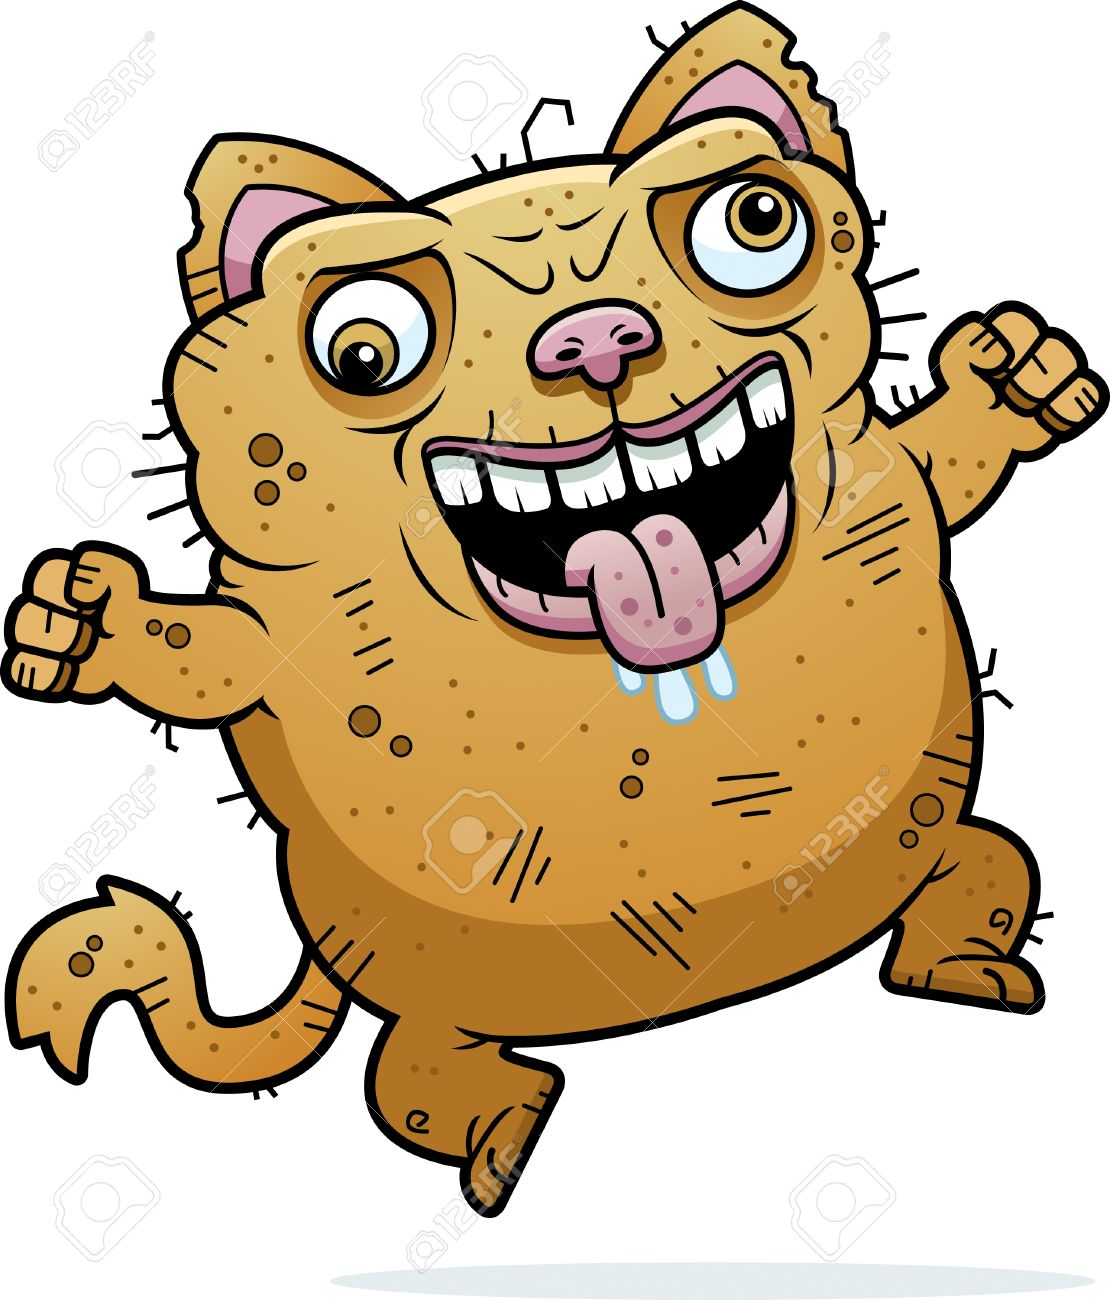 A Cartoon Illustration Of An Ugly Cat Looking Crazy Royalty Free Cliparts Vectors And Stock Illustration Image 42751538